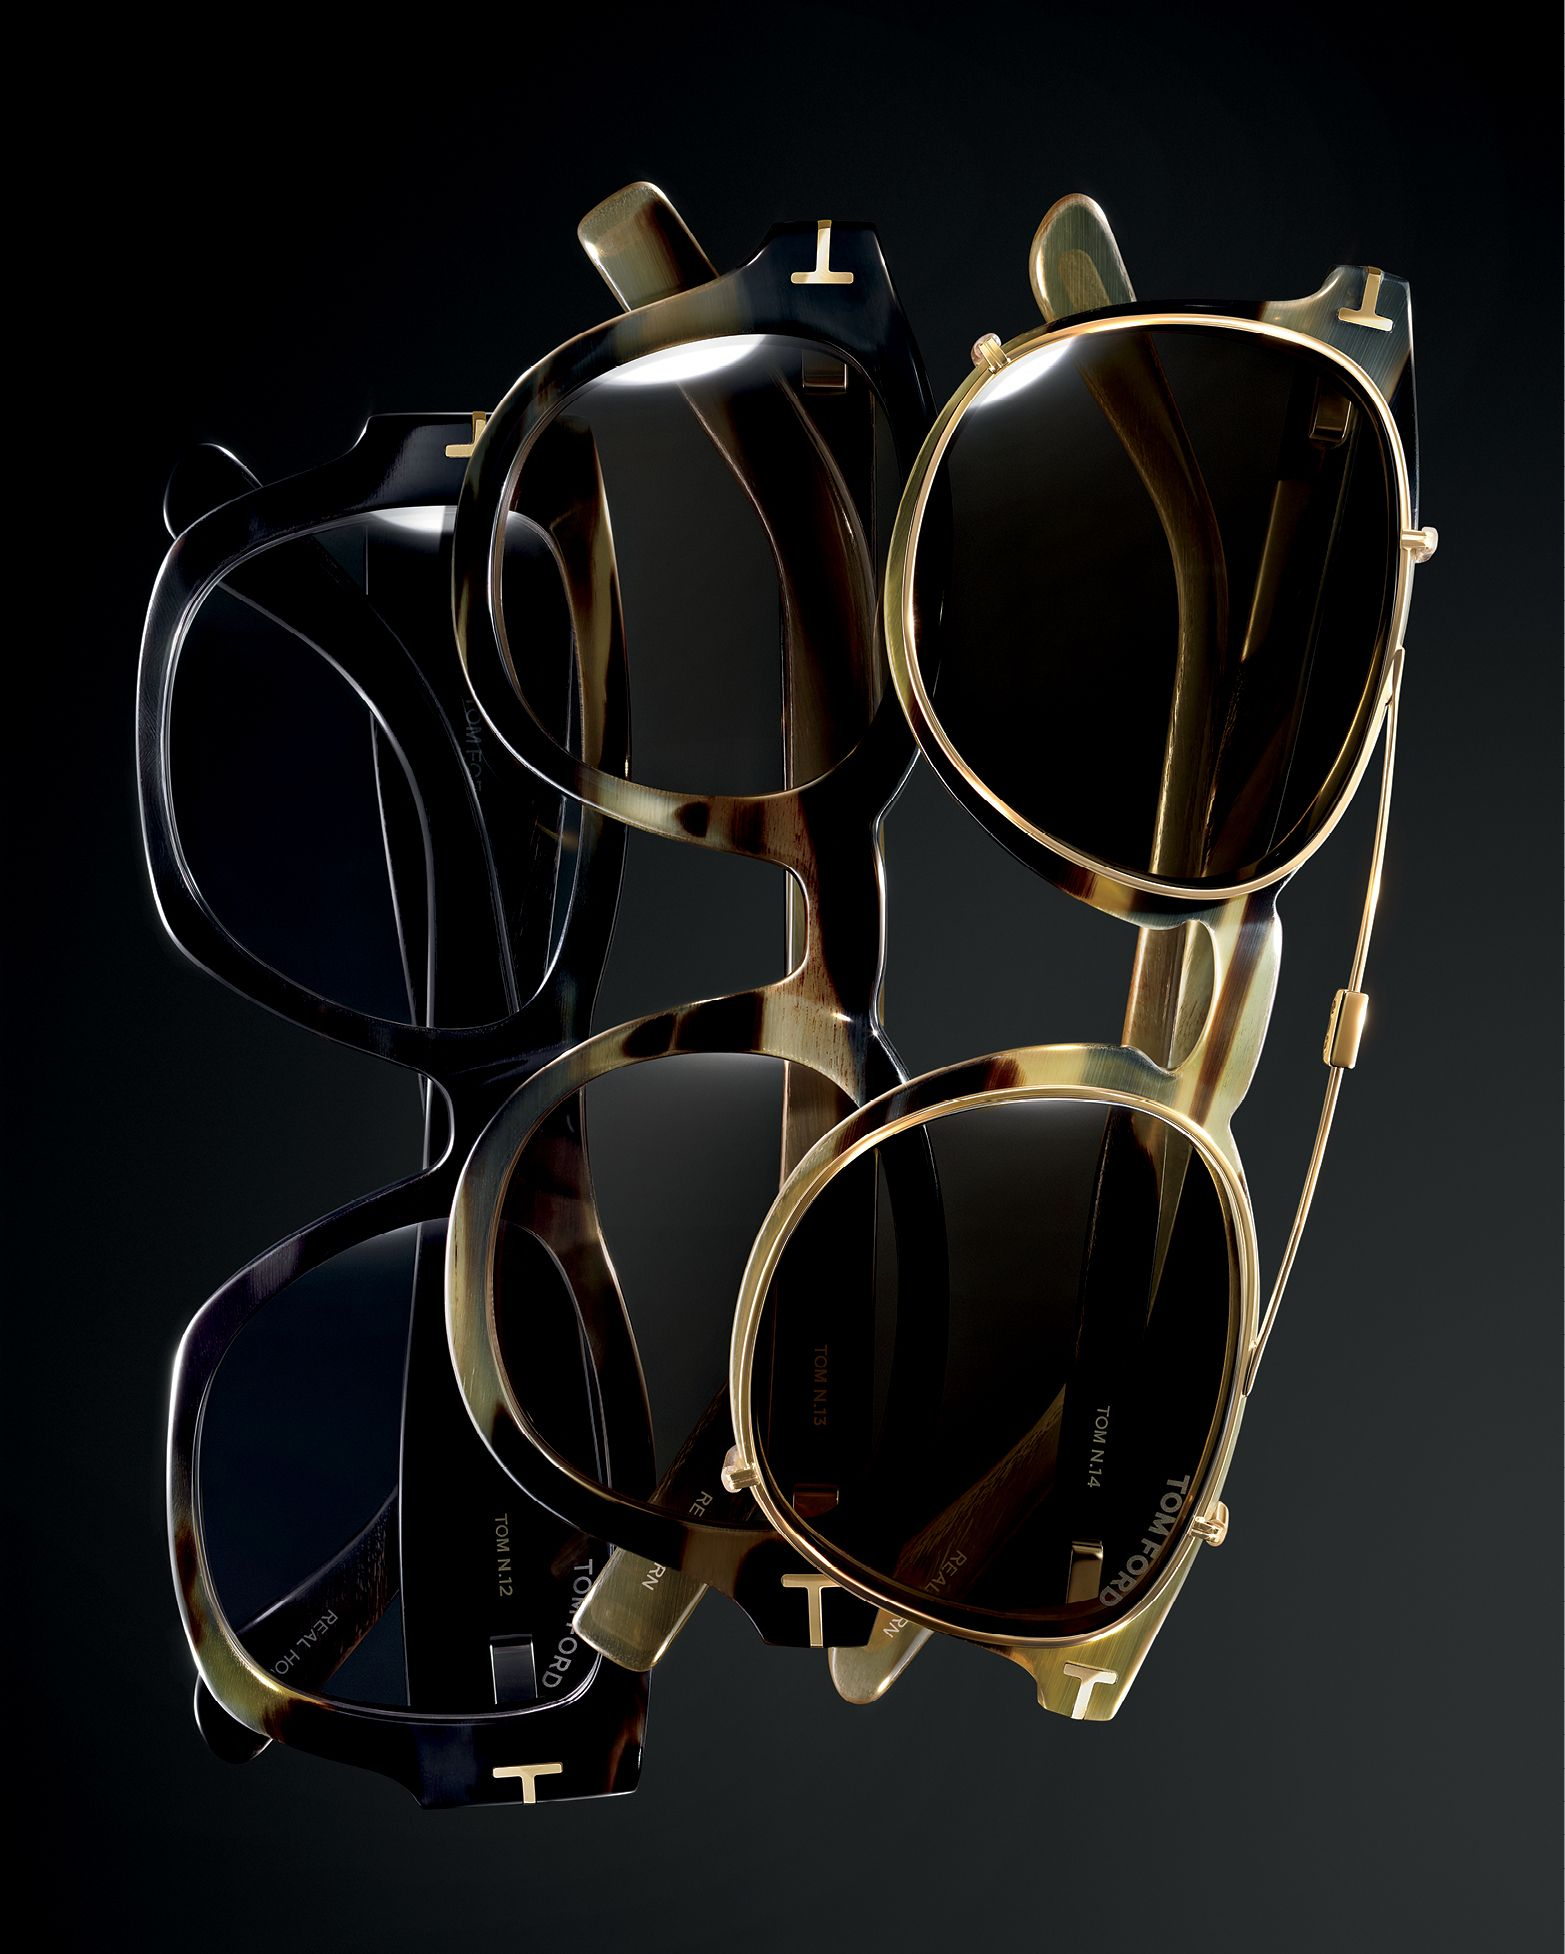 276e0d5fc98 Introducing TOM FORD Private Collection styles TOM N.12